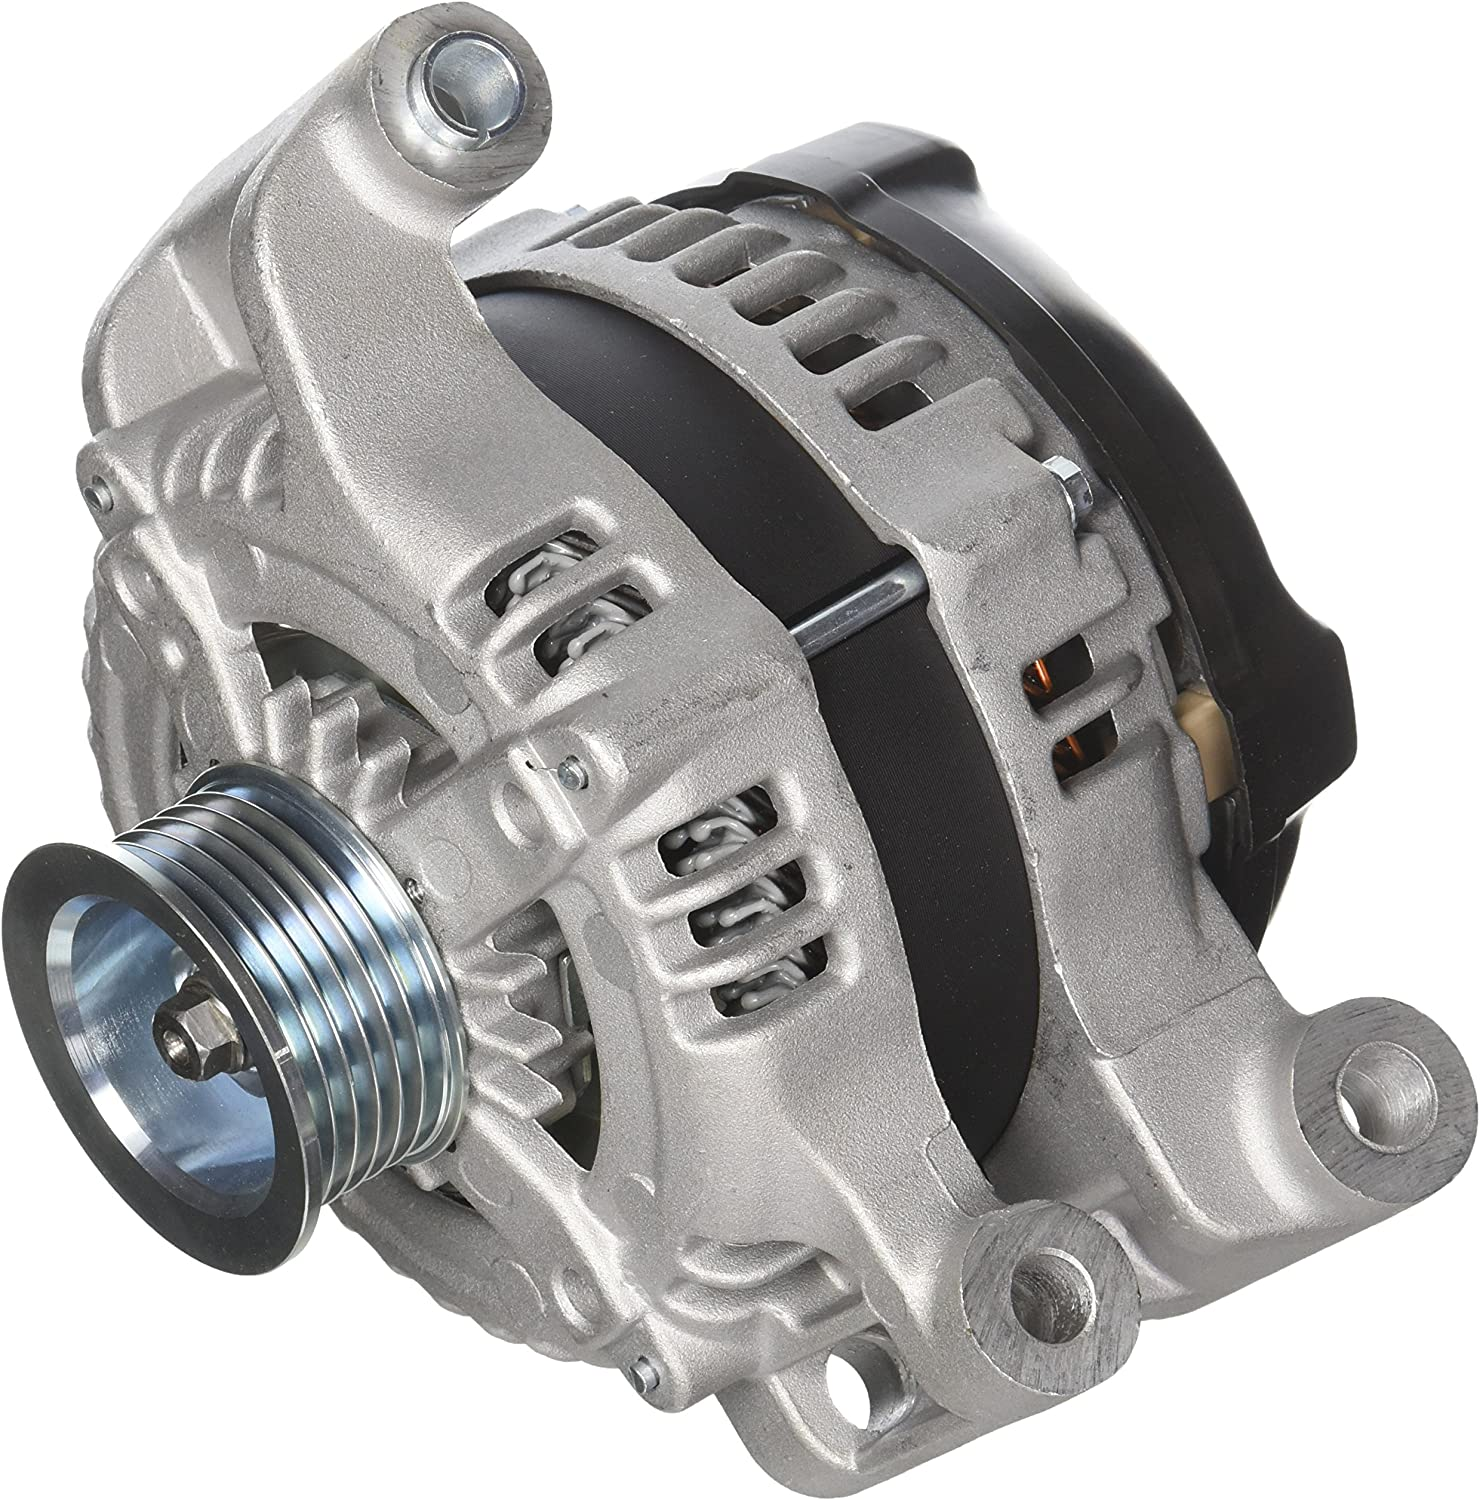 Manufacturer OFFicial shop TYC 2-11113 Replacement Our shop OFFers the best service Alternator